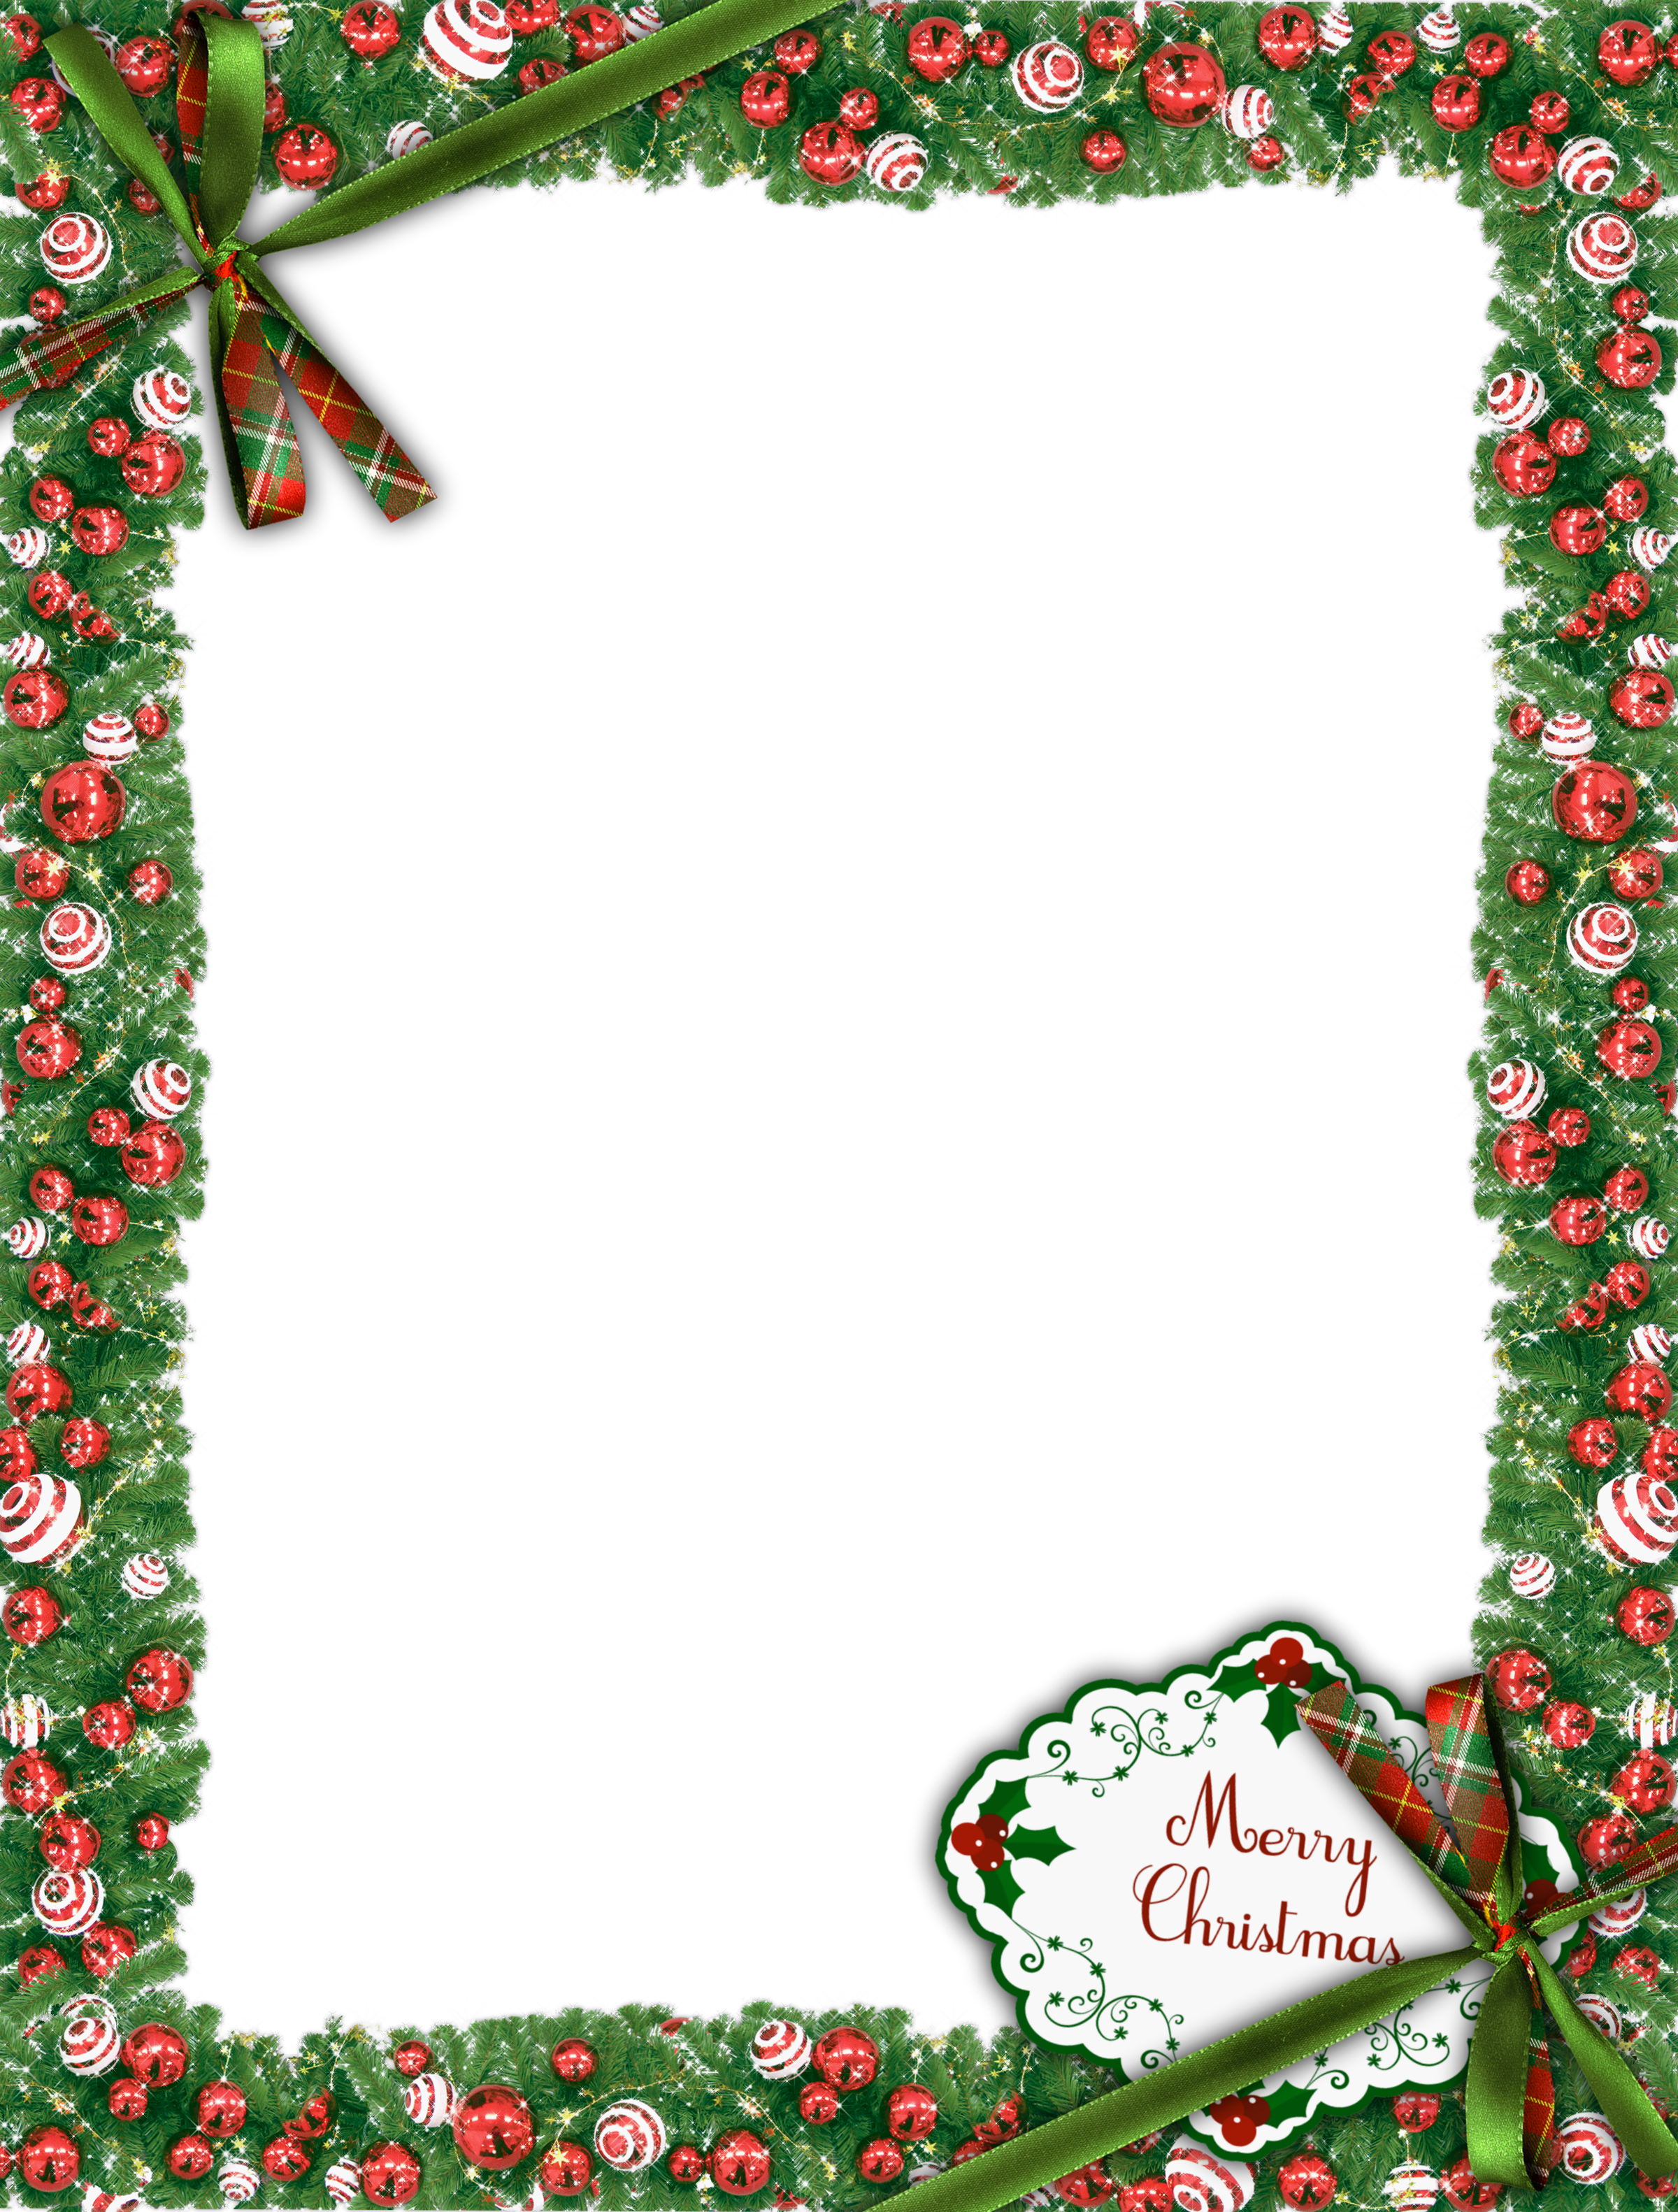 Merry christmas frames and borders png. Green photo frame gallery